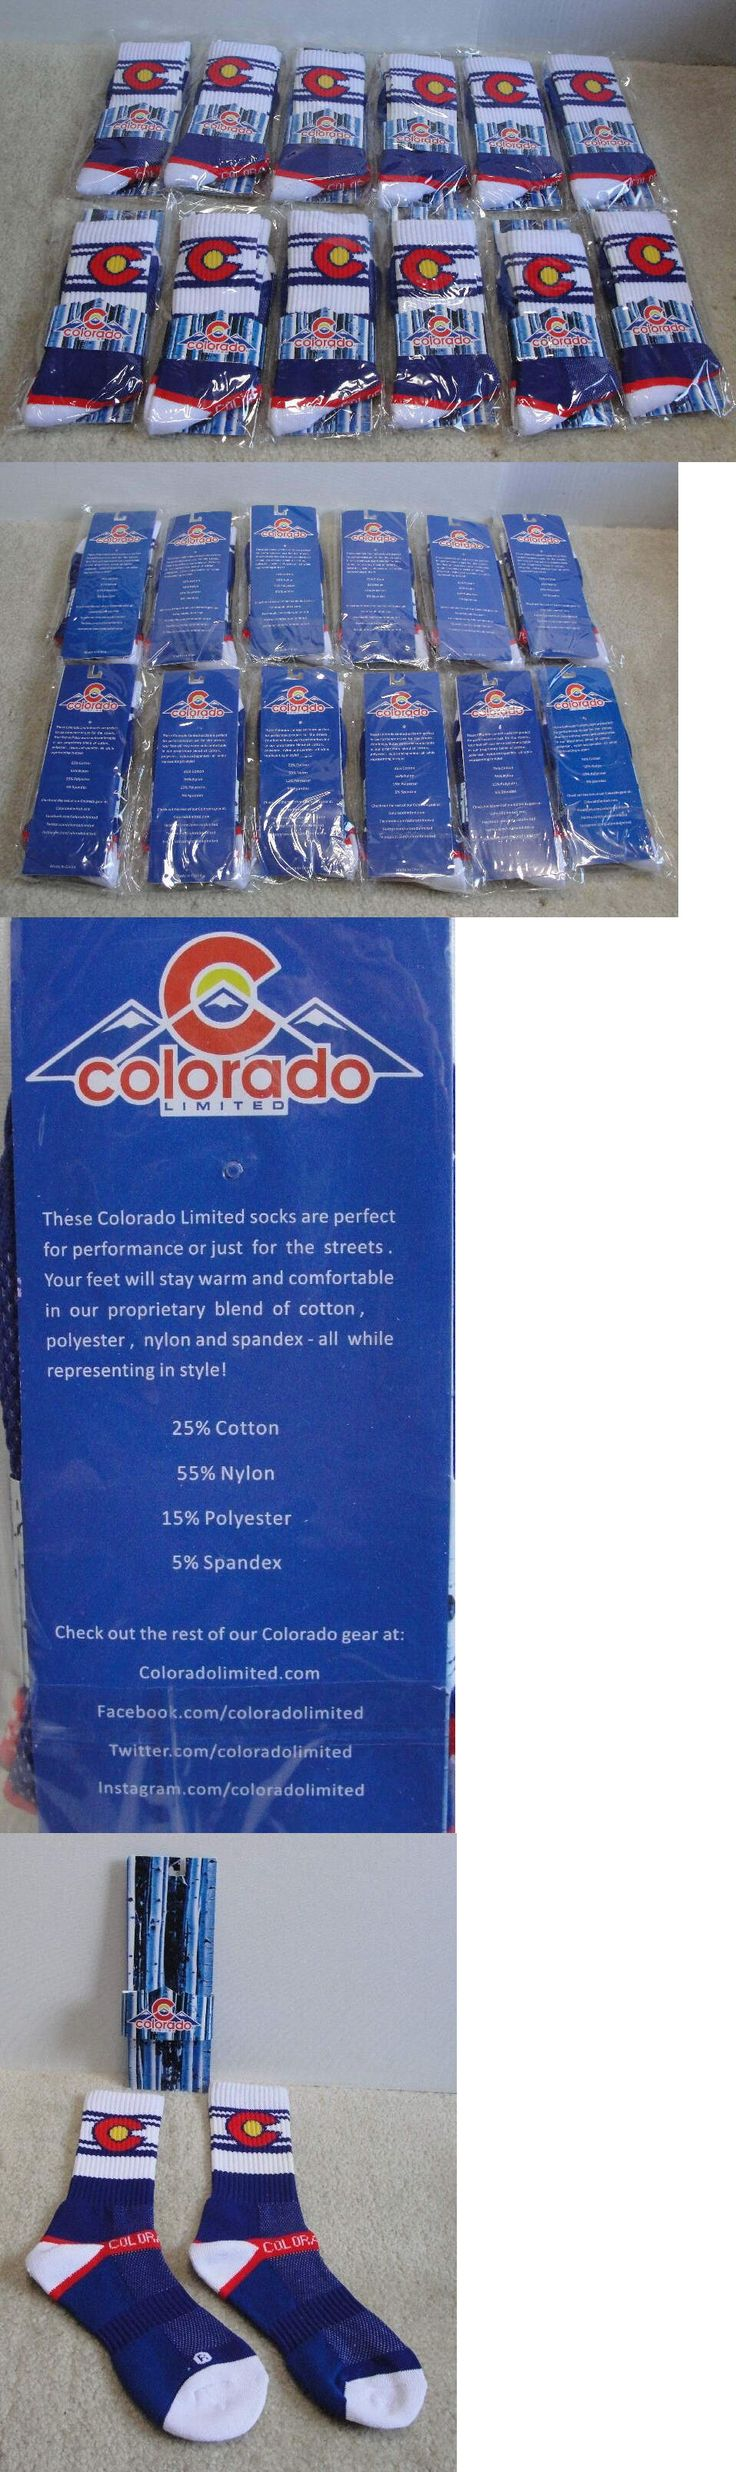 Socks 166695: 12 Pairs Of Colorado Flag Colorado Limited Adult Crew Socks New -> BUY IT NOW ONLY: $49.99 on eBay!